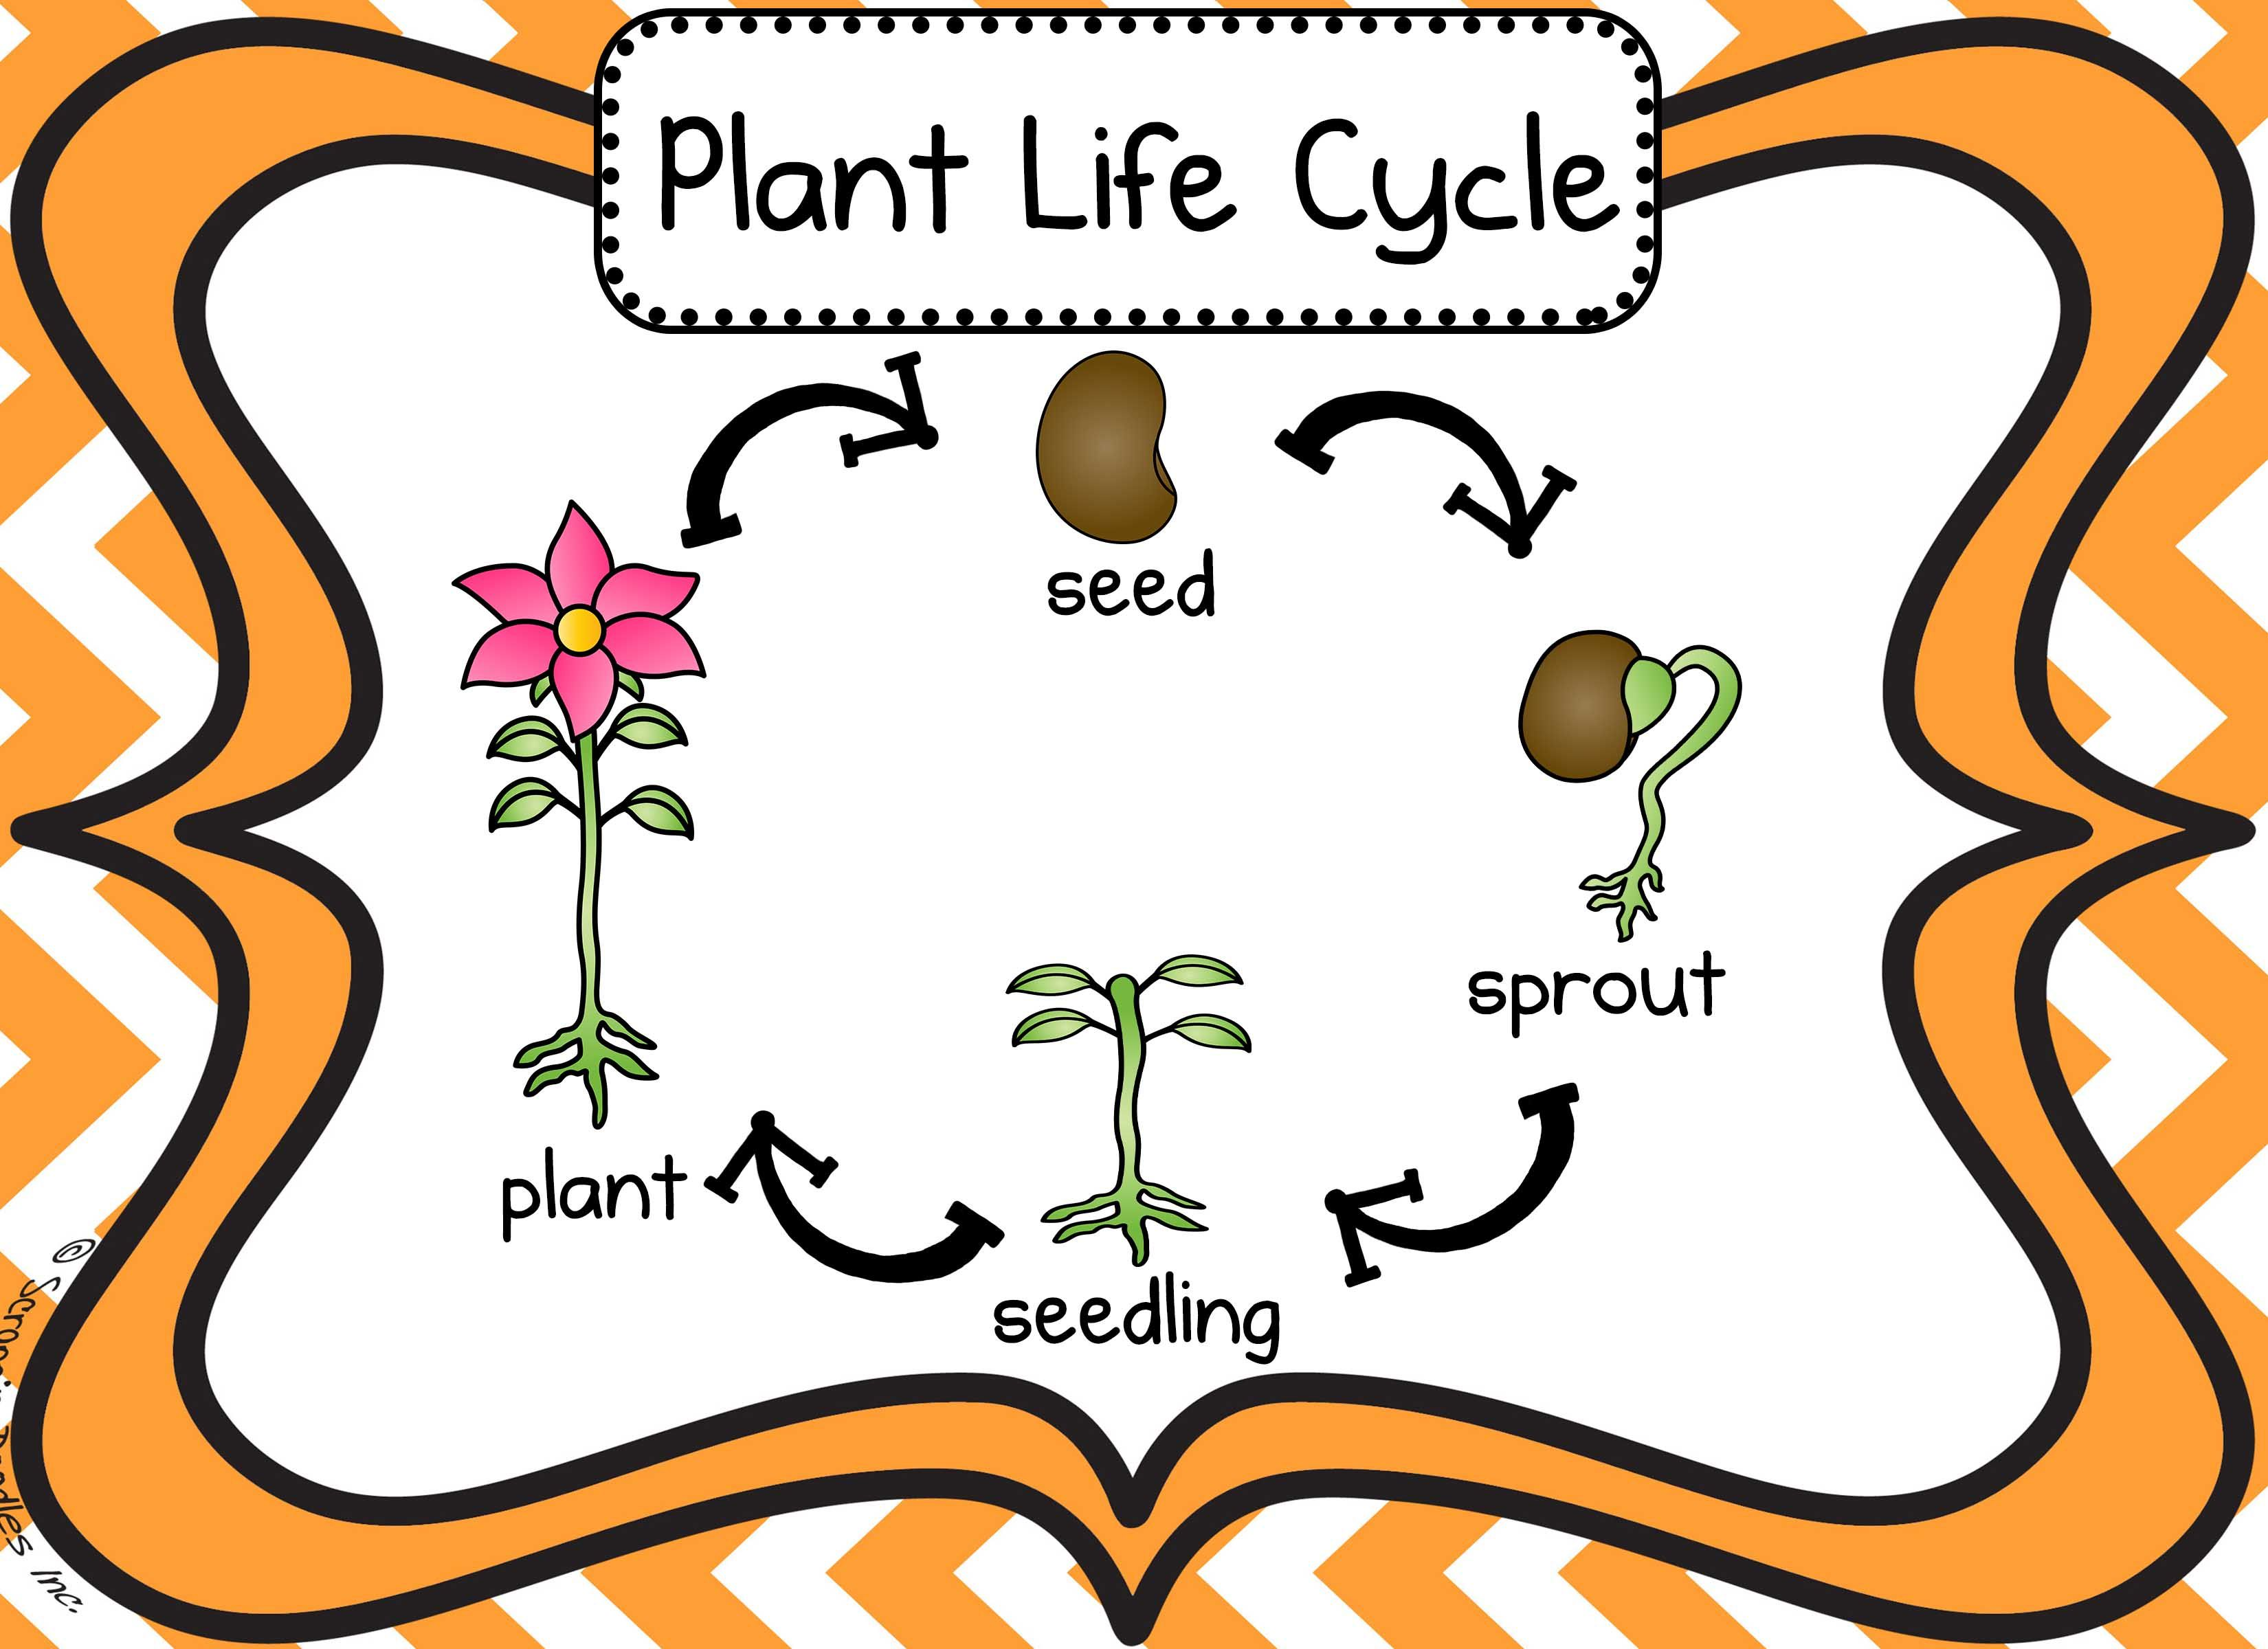 Pin By Maria Avila On For Lian Plant Life Cycle Flower Life Cycle Preschool Life Cycles [ 2400 x 3300 Pixel ]